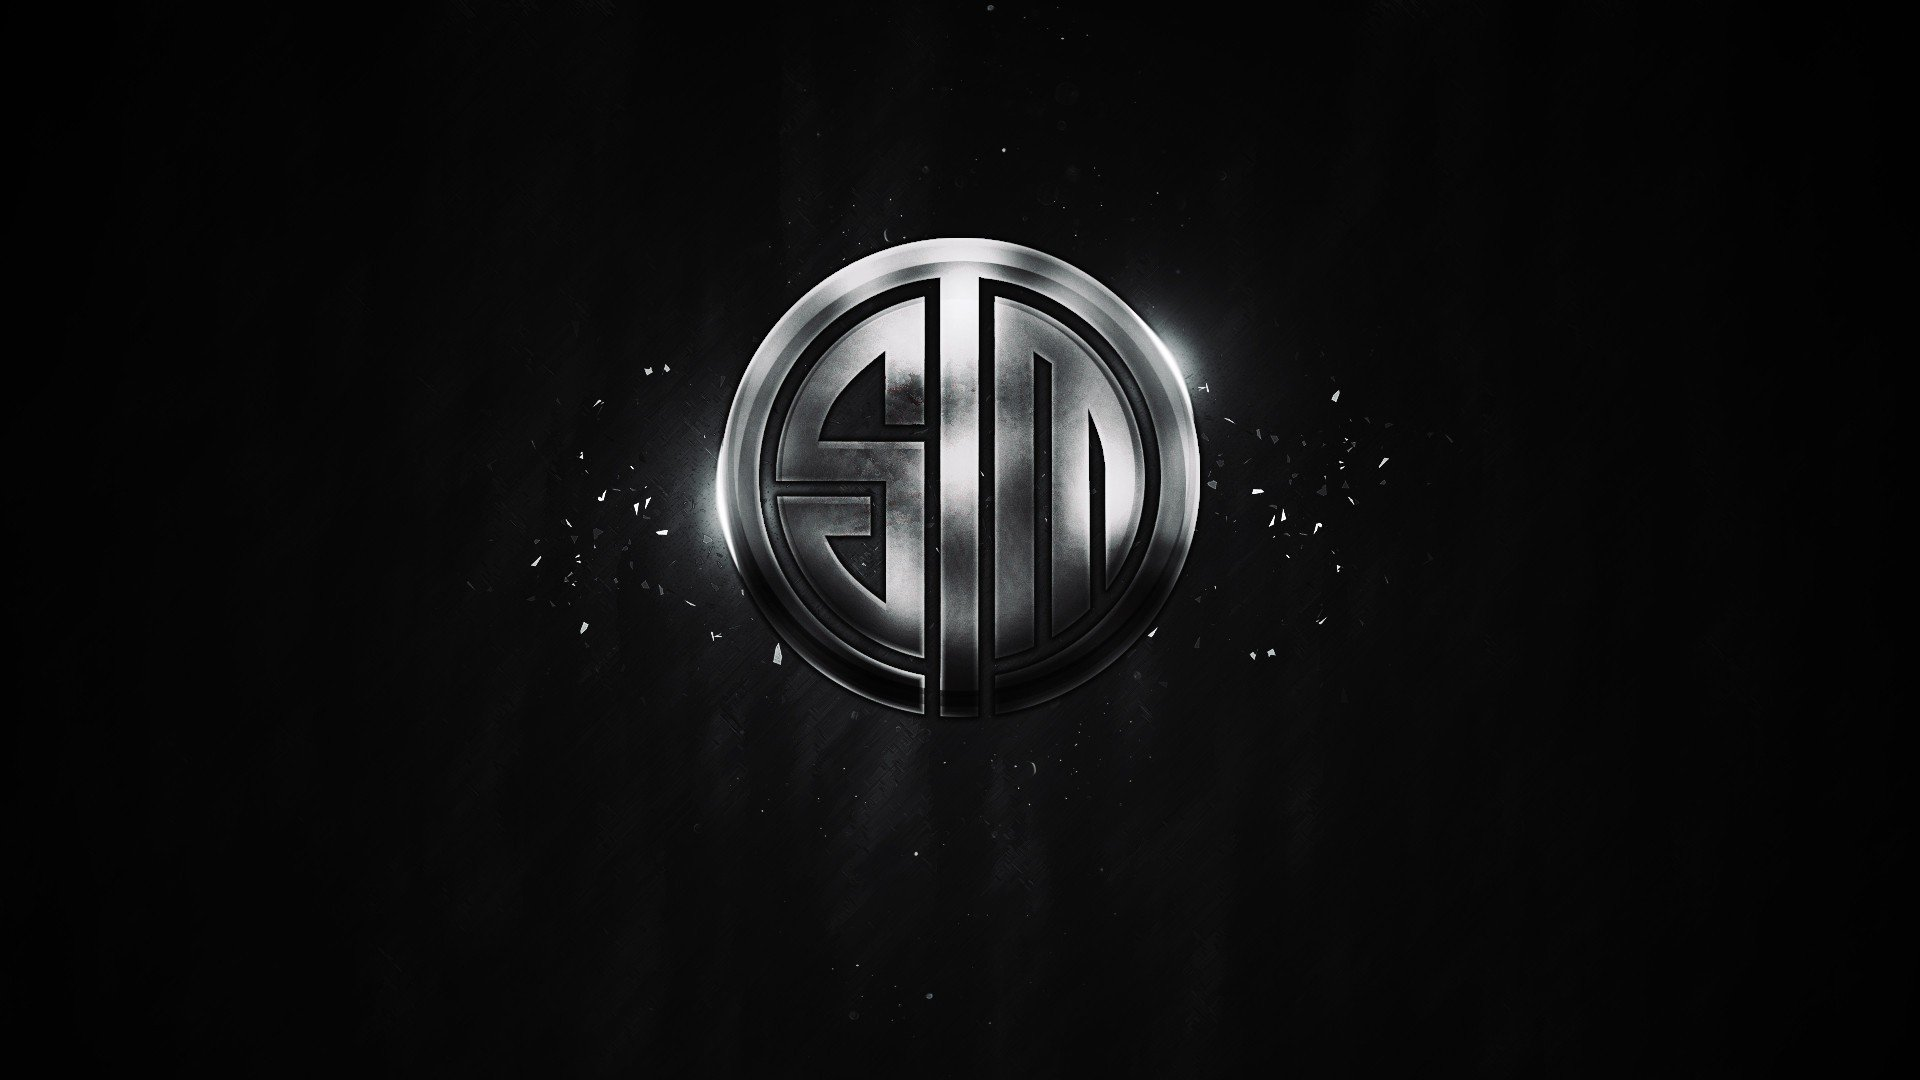 dark logo team solomid hd wallpapers desktop and